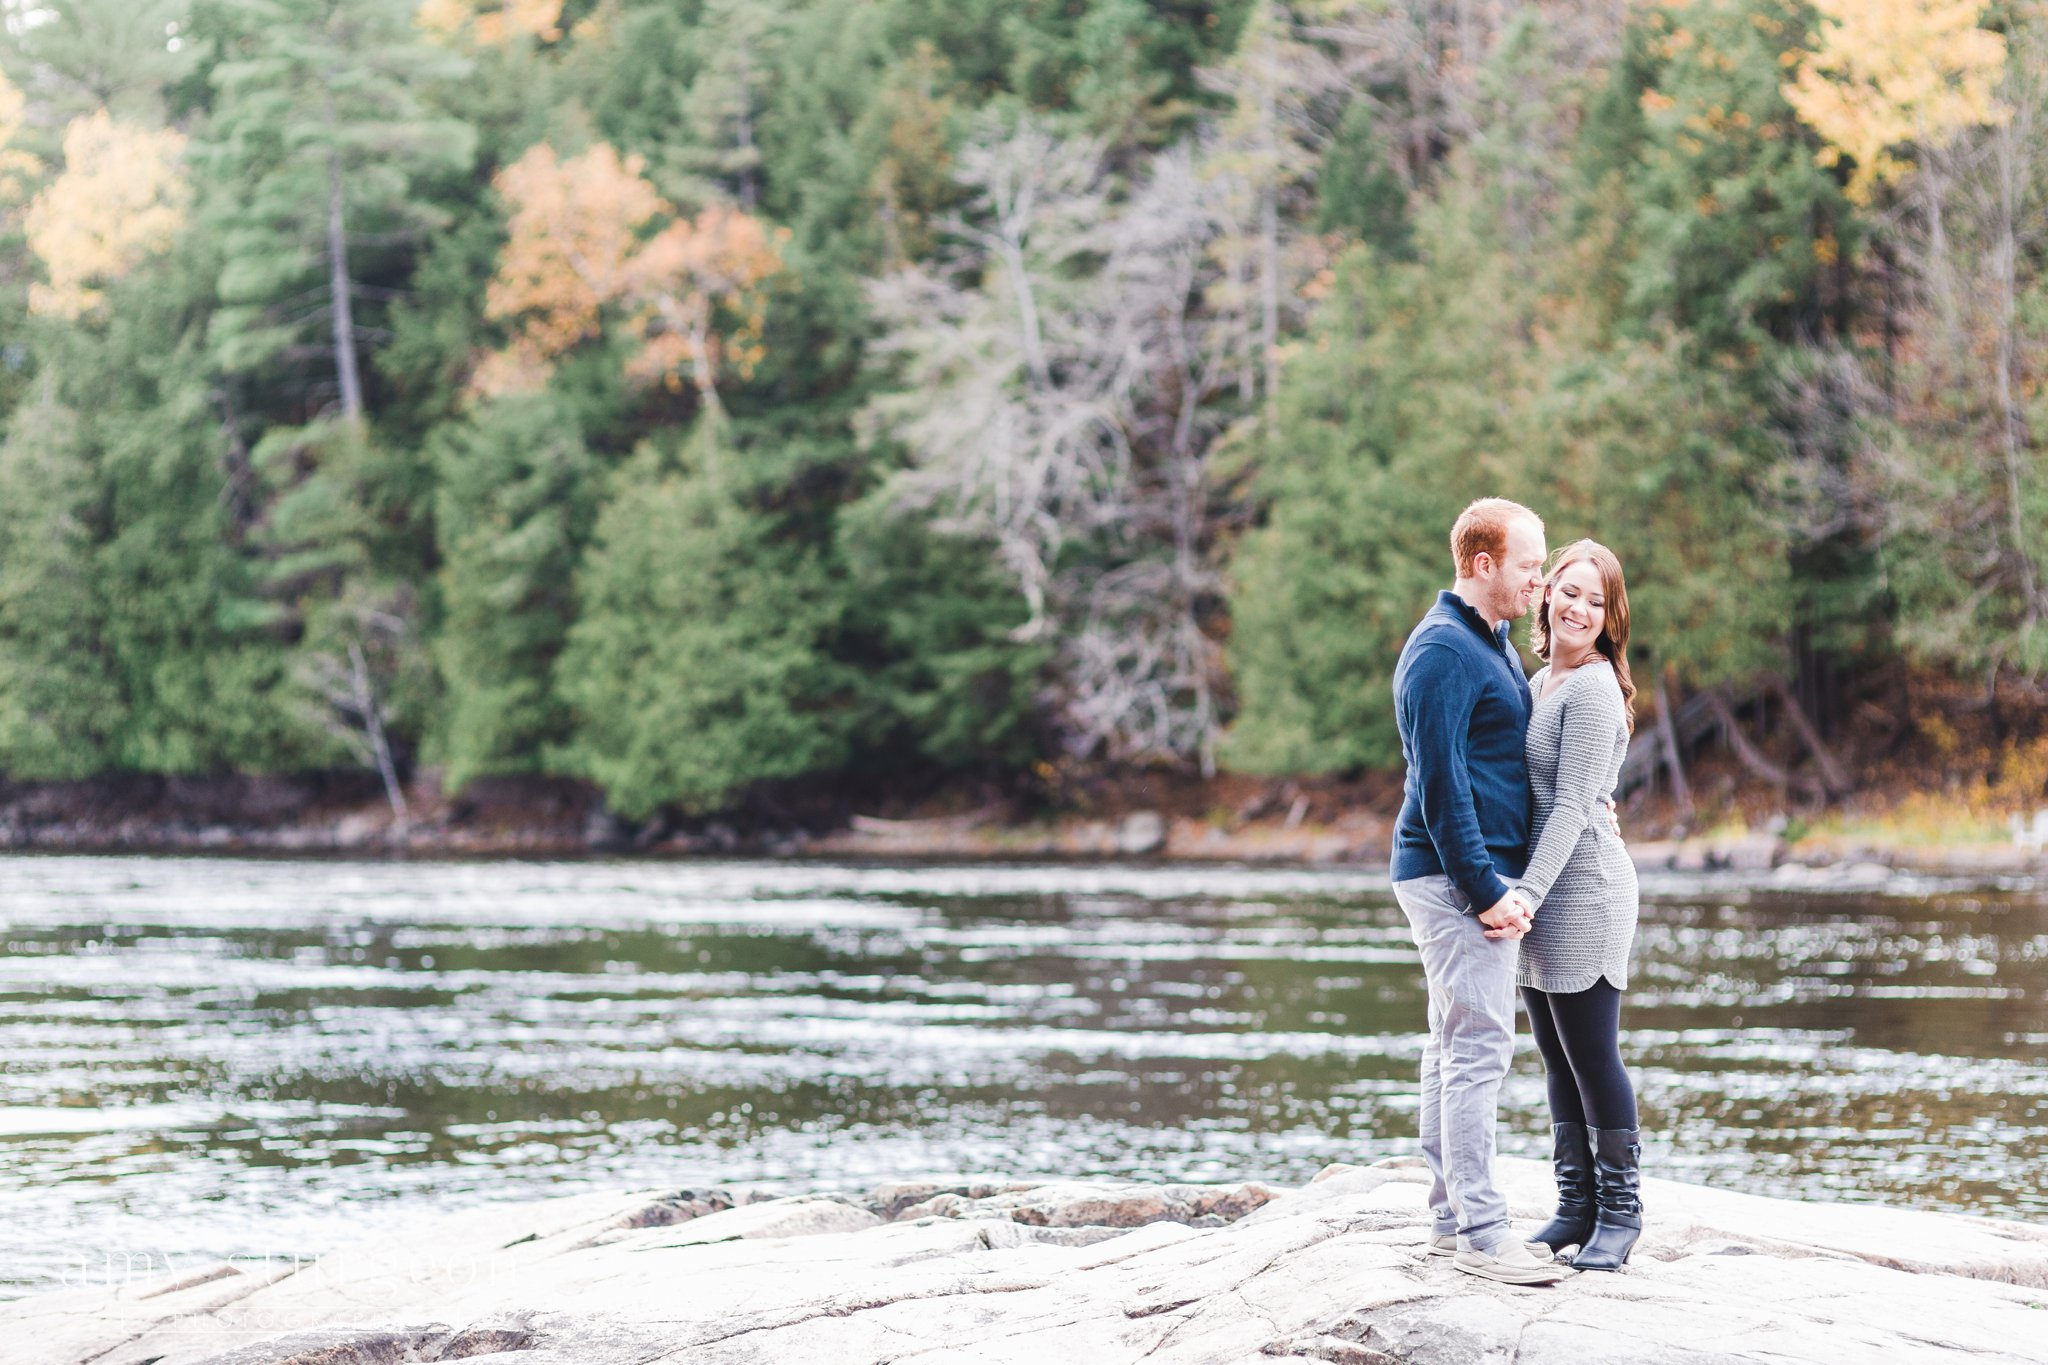 The water levels were low for the Fall Wakefield Engagement Session by the covered bridge